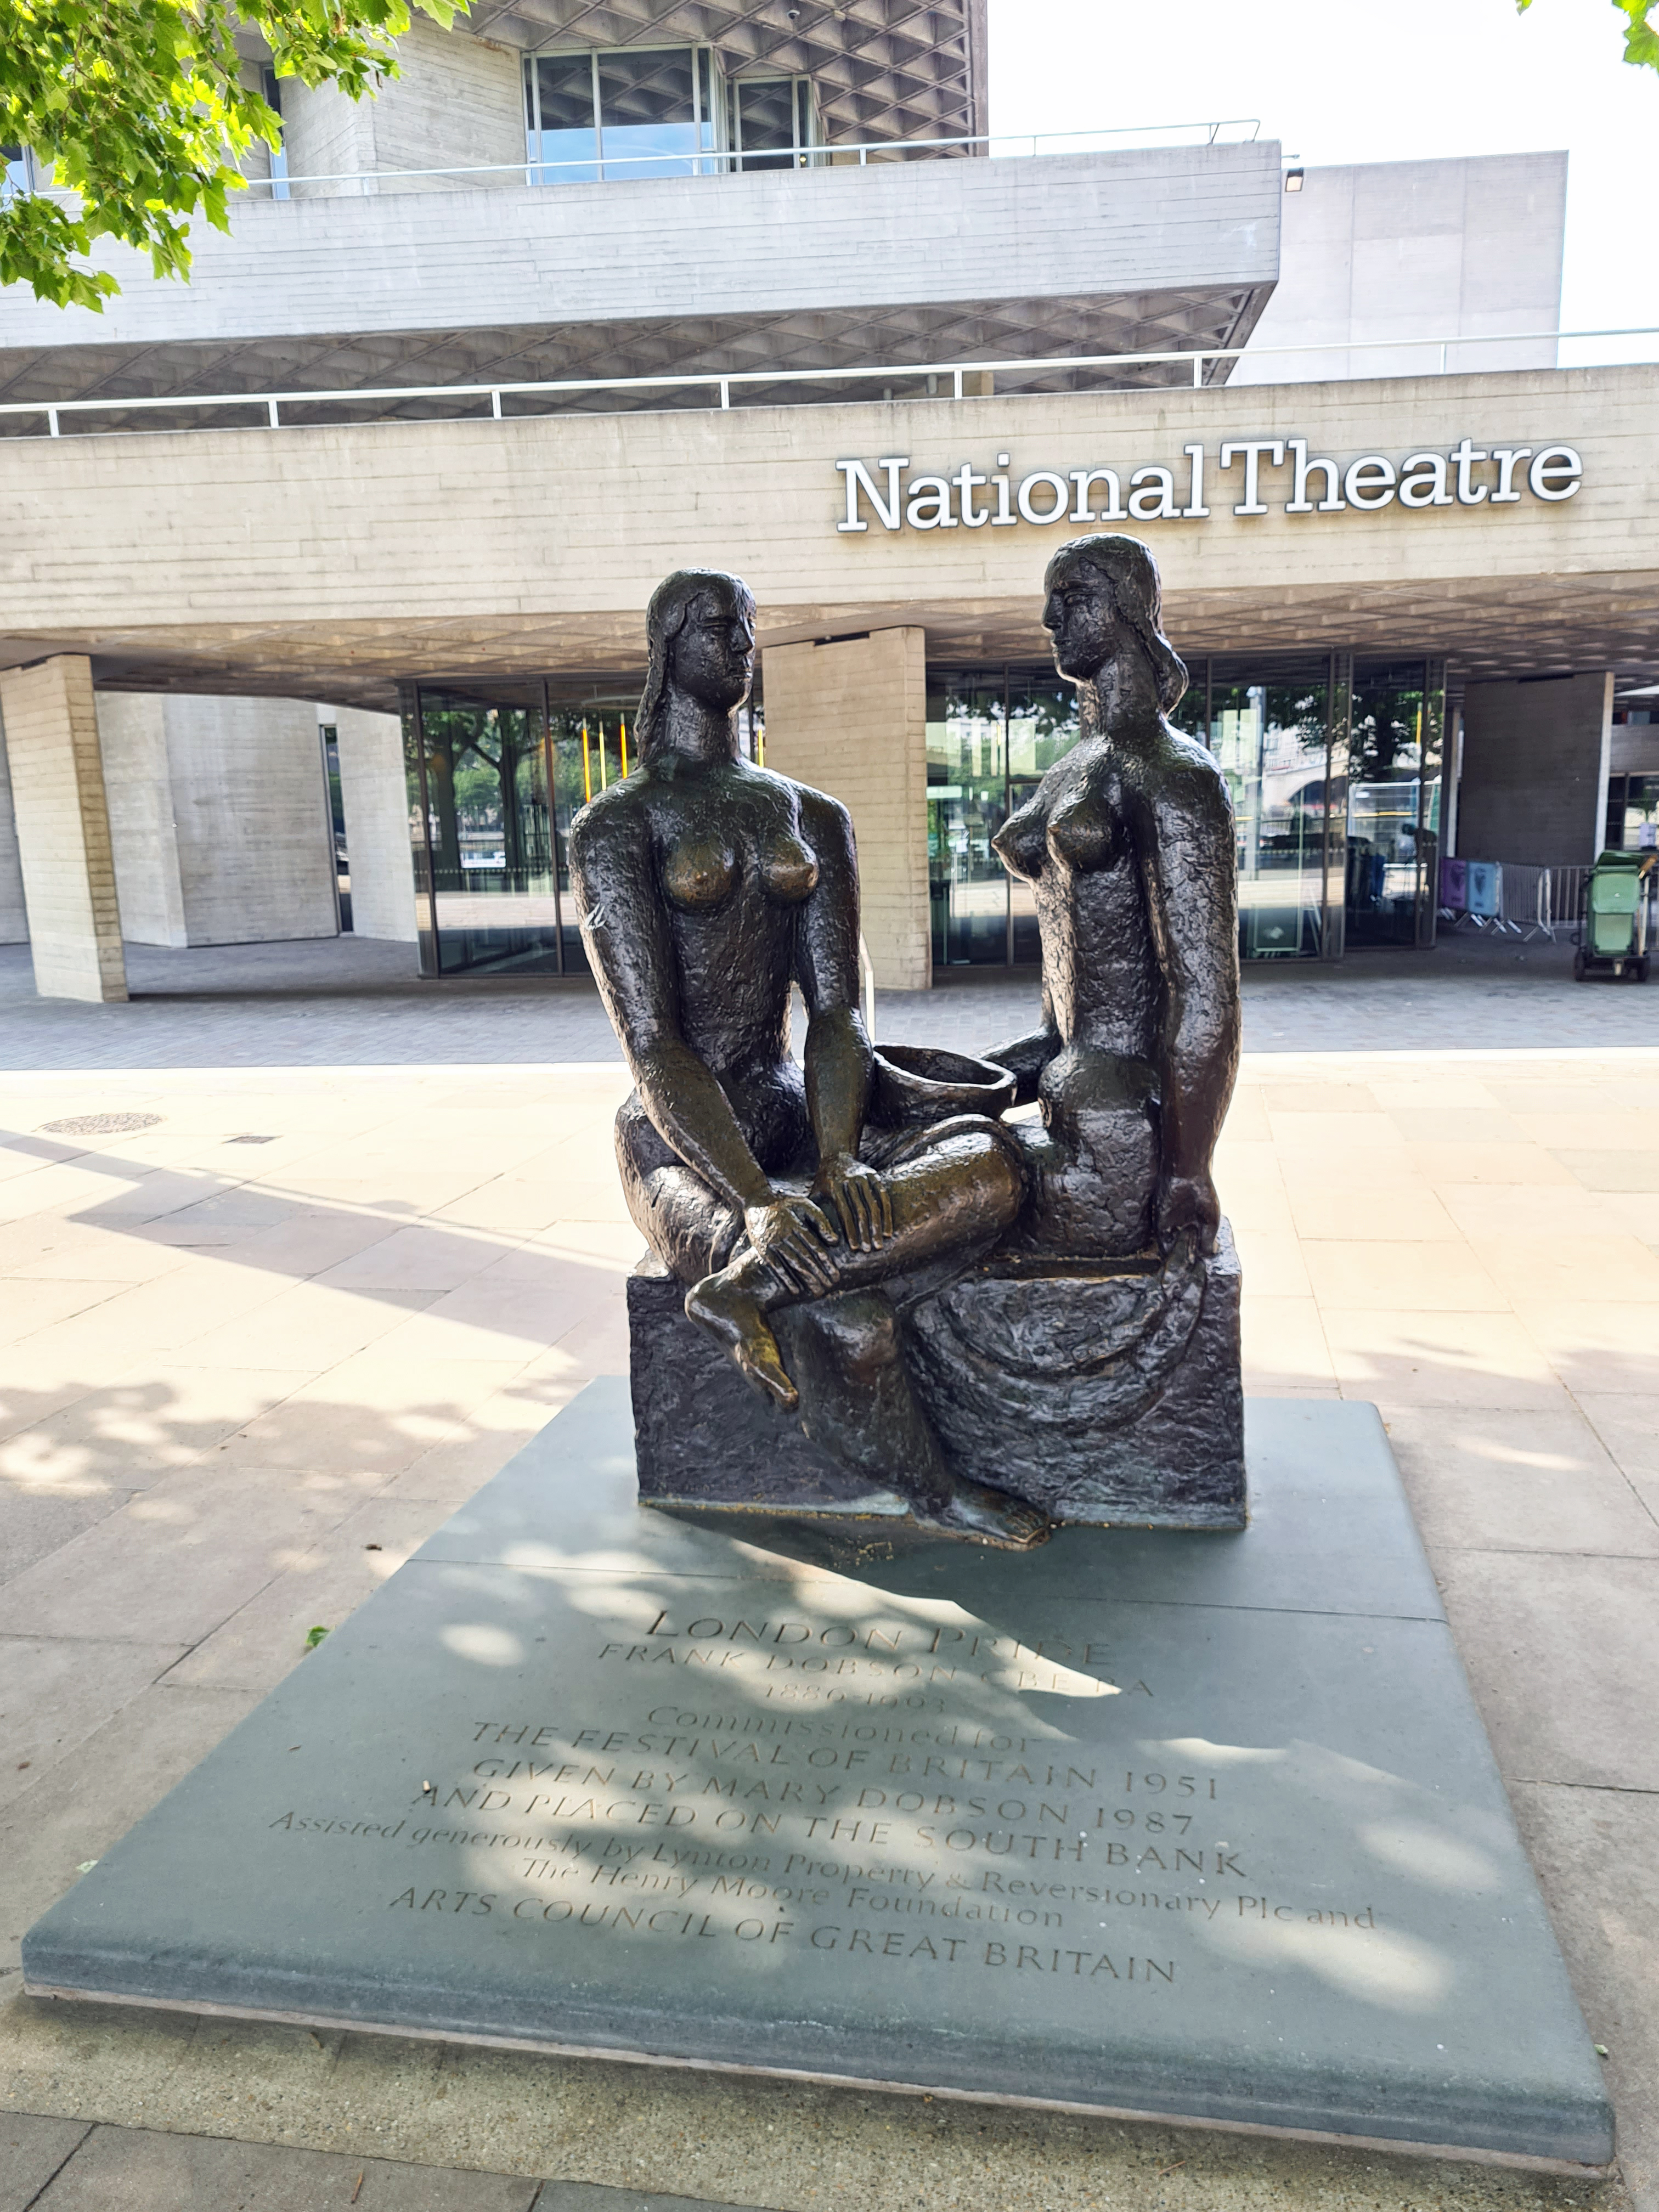 London Pride, Frank Dobson. National Theatre, South Bank